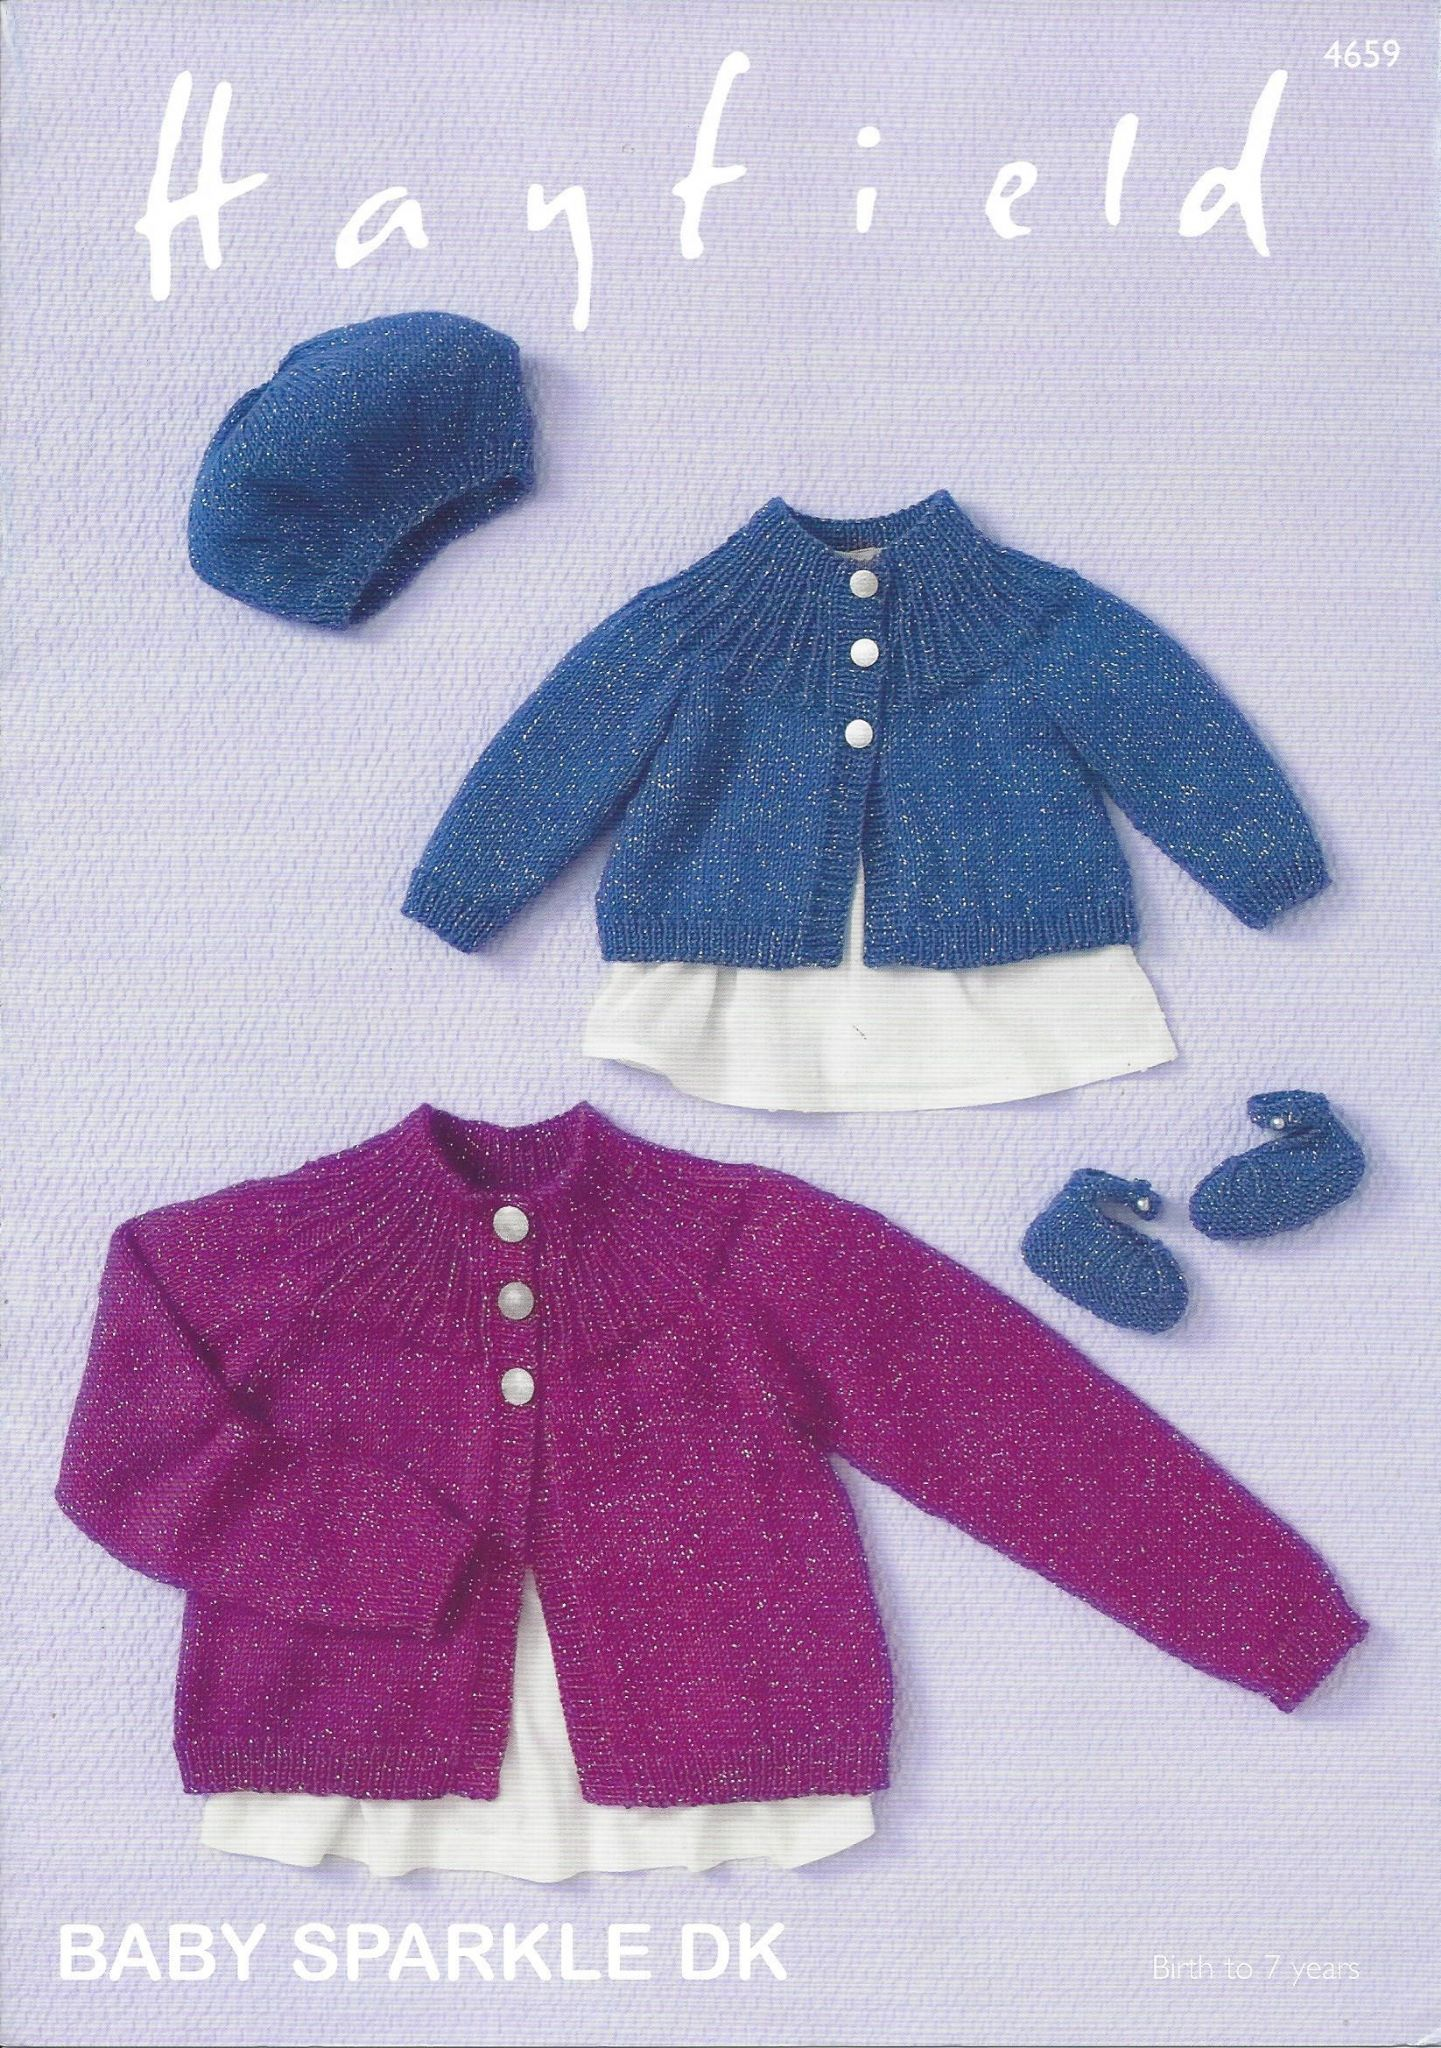 Hayfield Baby Sparkle DK - 4659 Cardigan Beret & Shoes Knitting Pattern